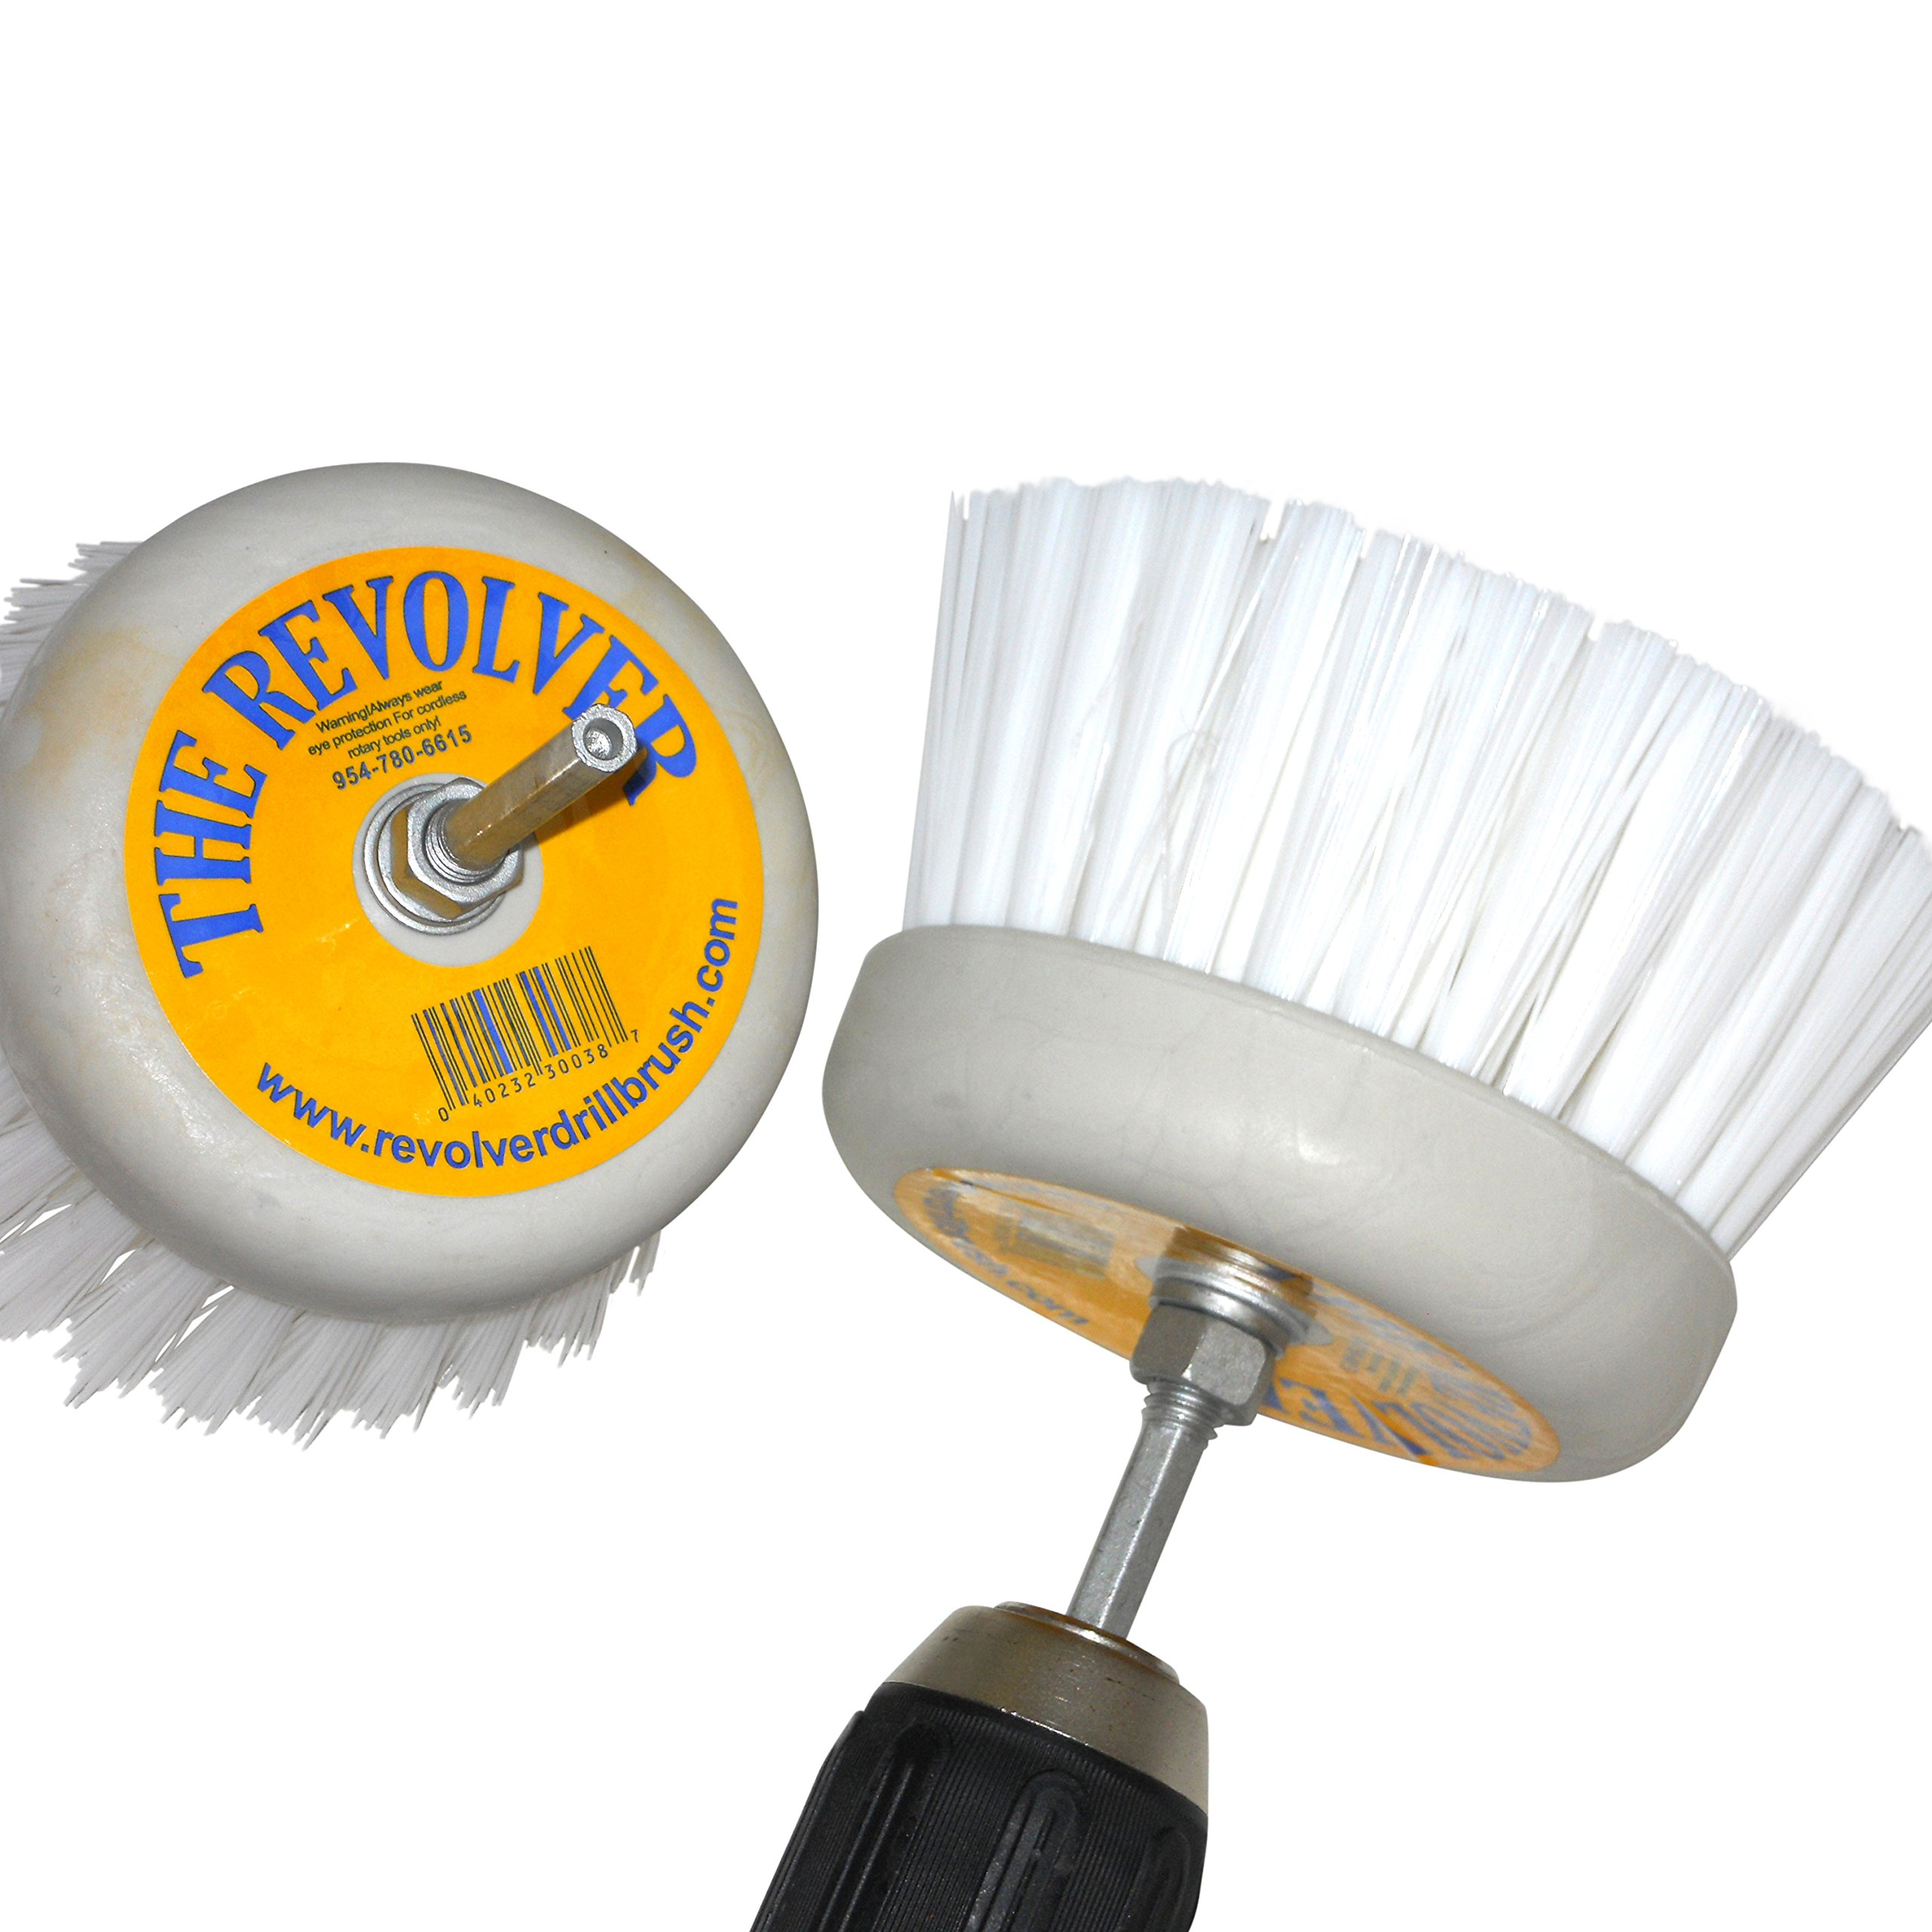 Revolver Drill Brush - Power Scrubbing Drill Attachment - Multi-Purpose Cleaning Tool (2 Pack) by Revolver Drill Brush (Image #3)